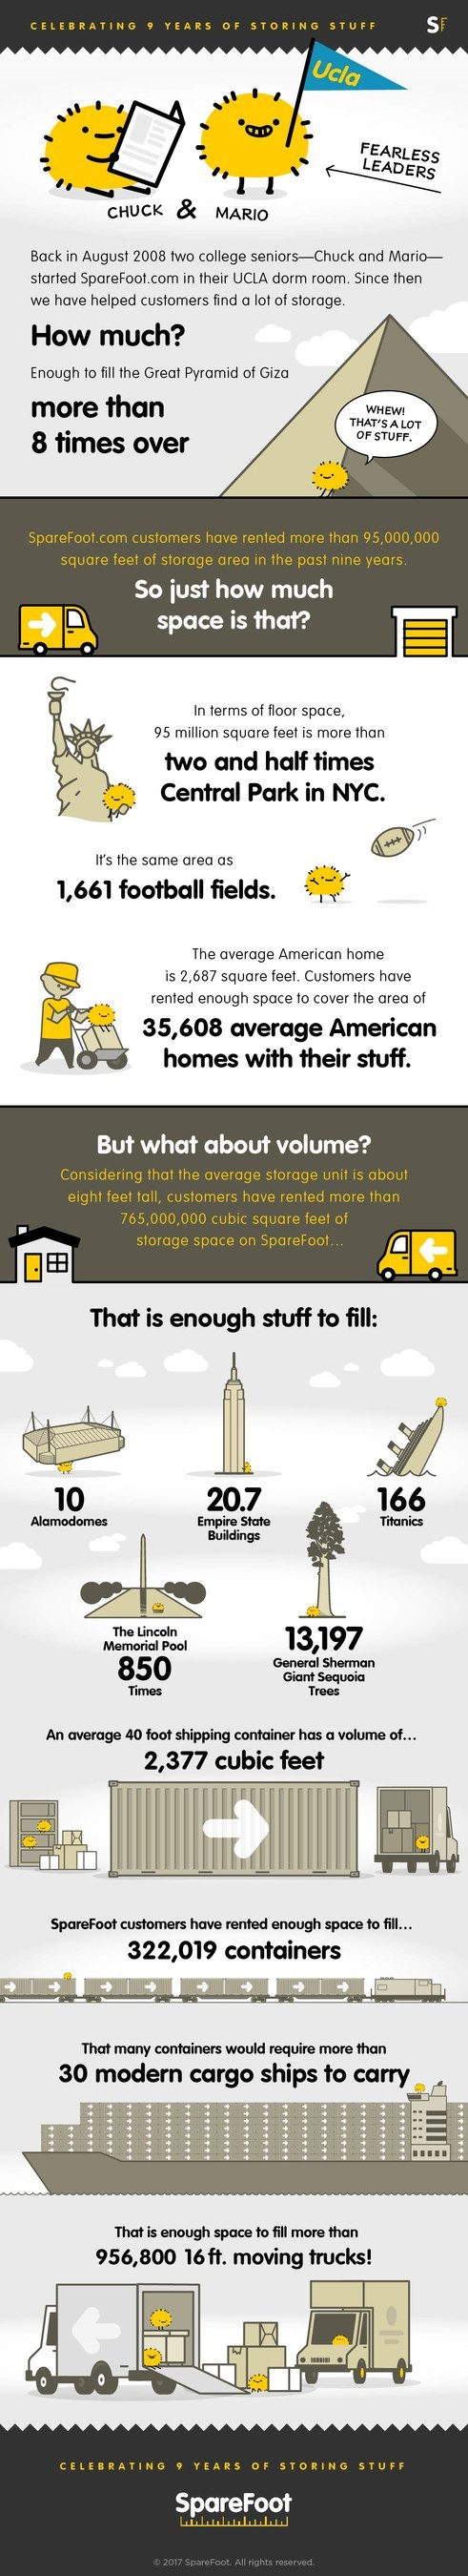 Consumers use SpareFoot to book 765 million cubic feet of storage space.